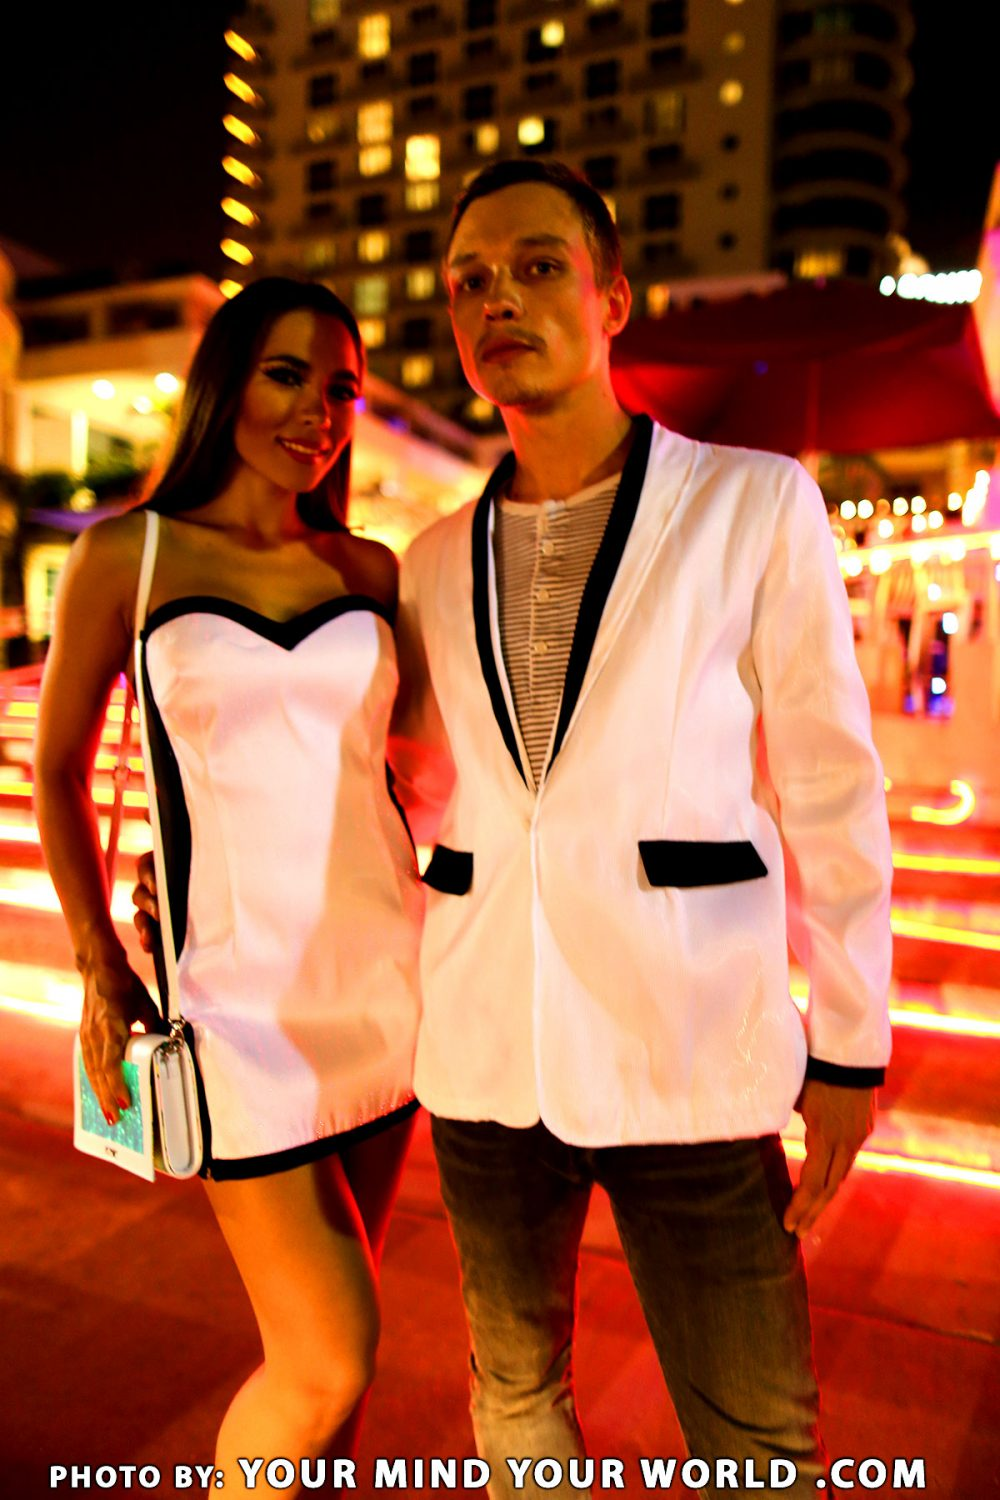 sexy party glowing white corset dress and white men glowing jacket